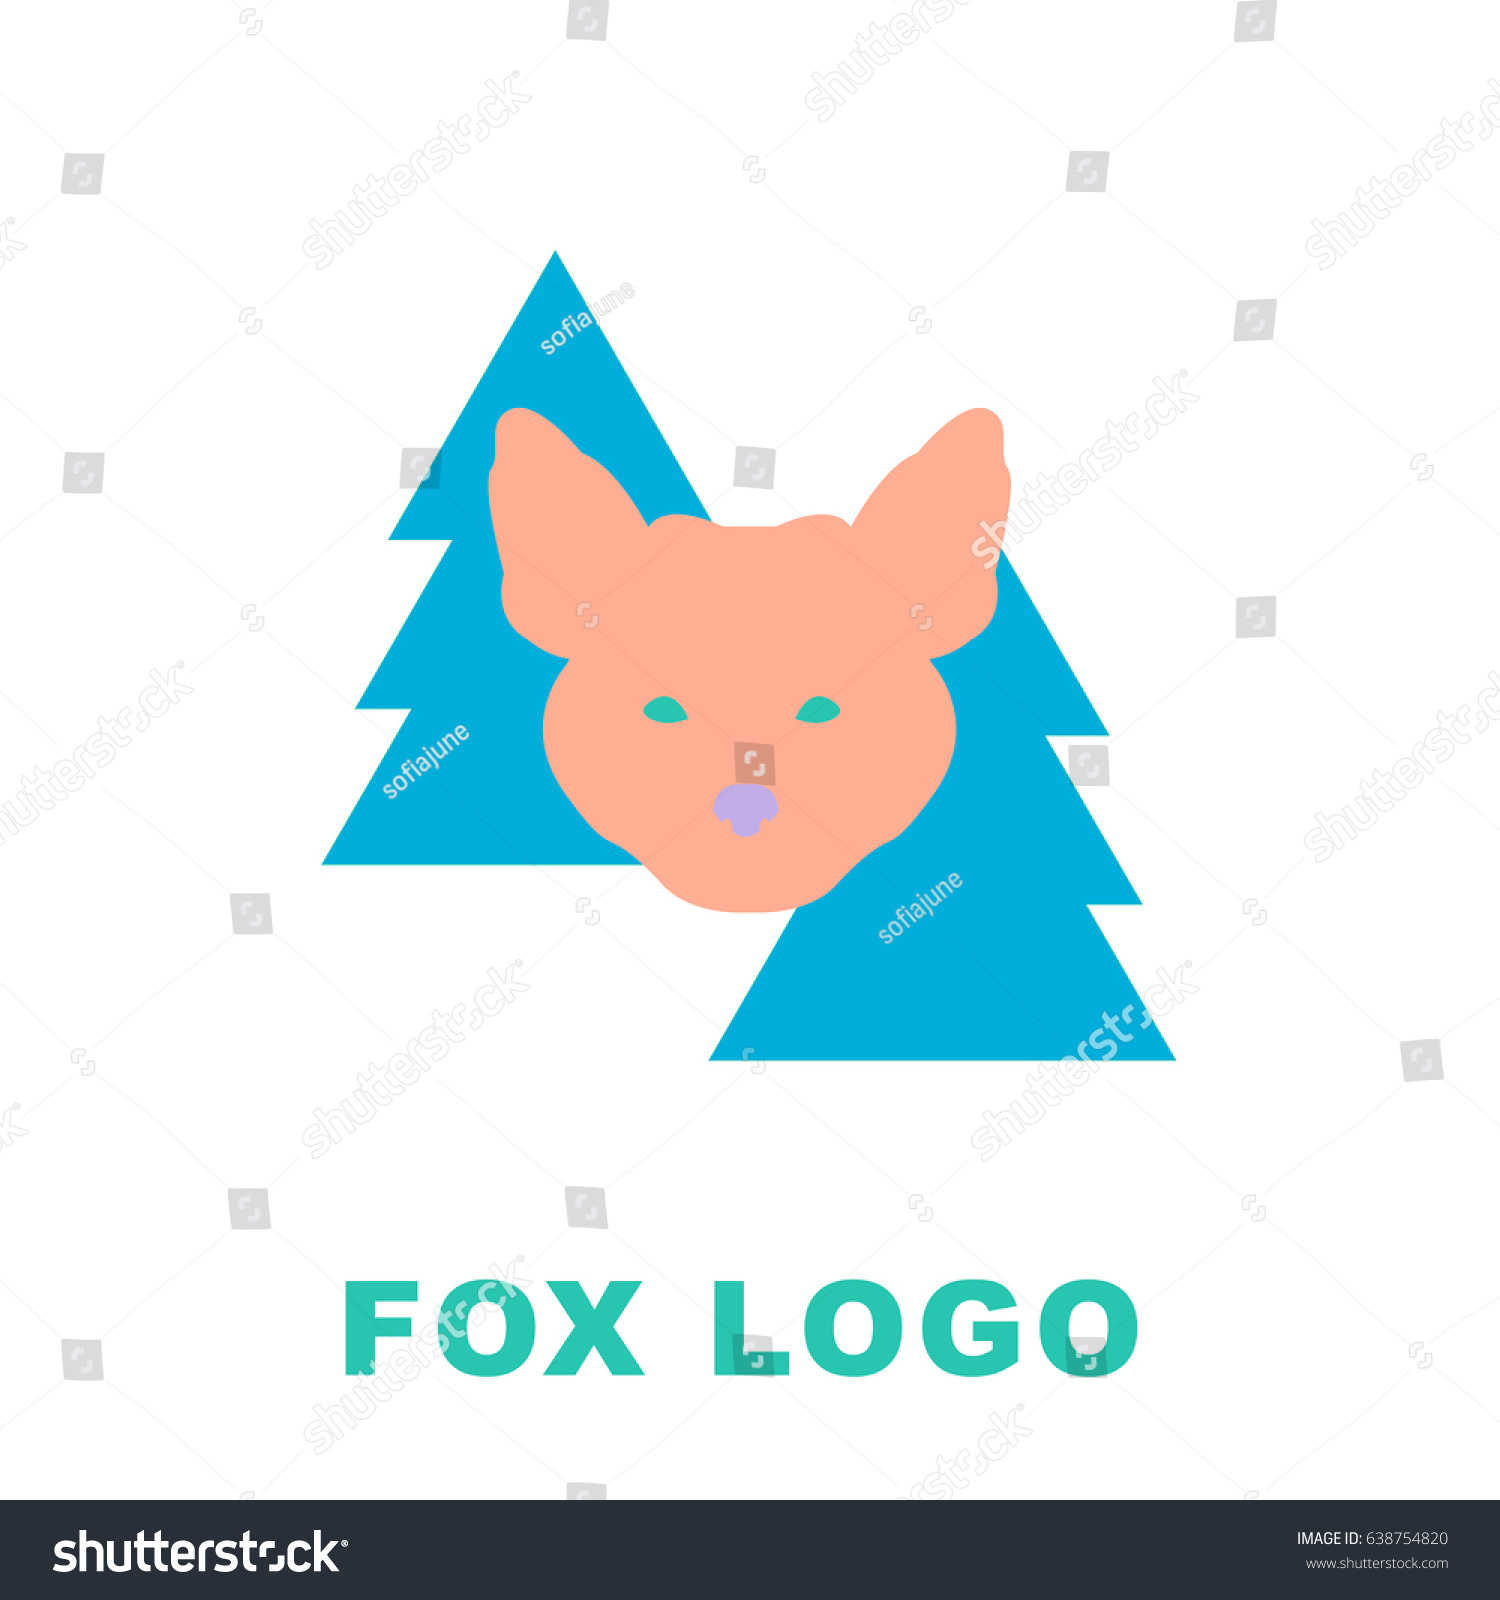 Stylized Illustration Fox Woods Can Be Stock Vector 638754820